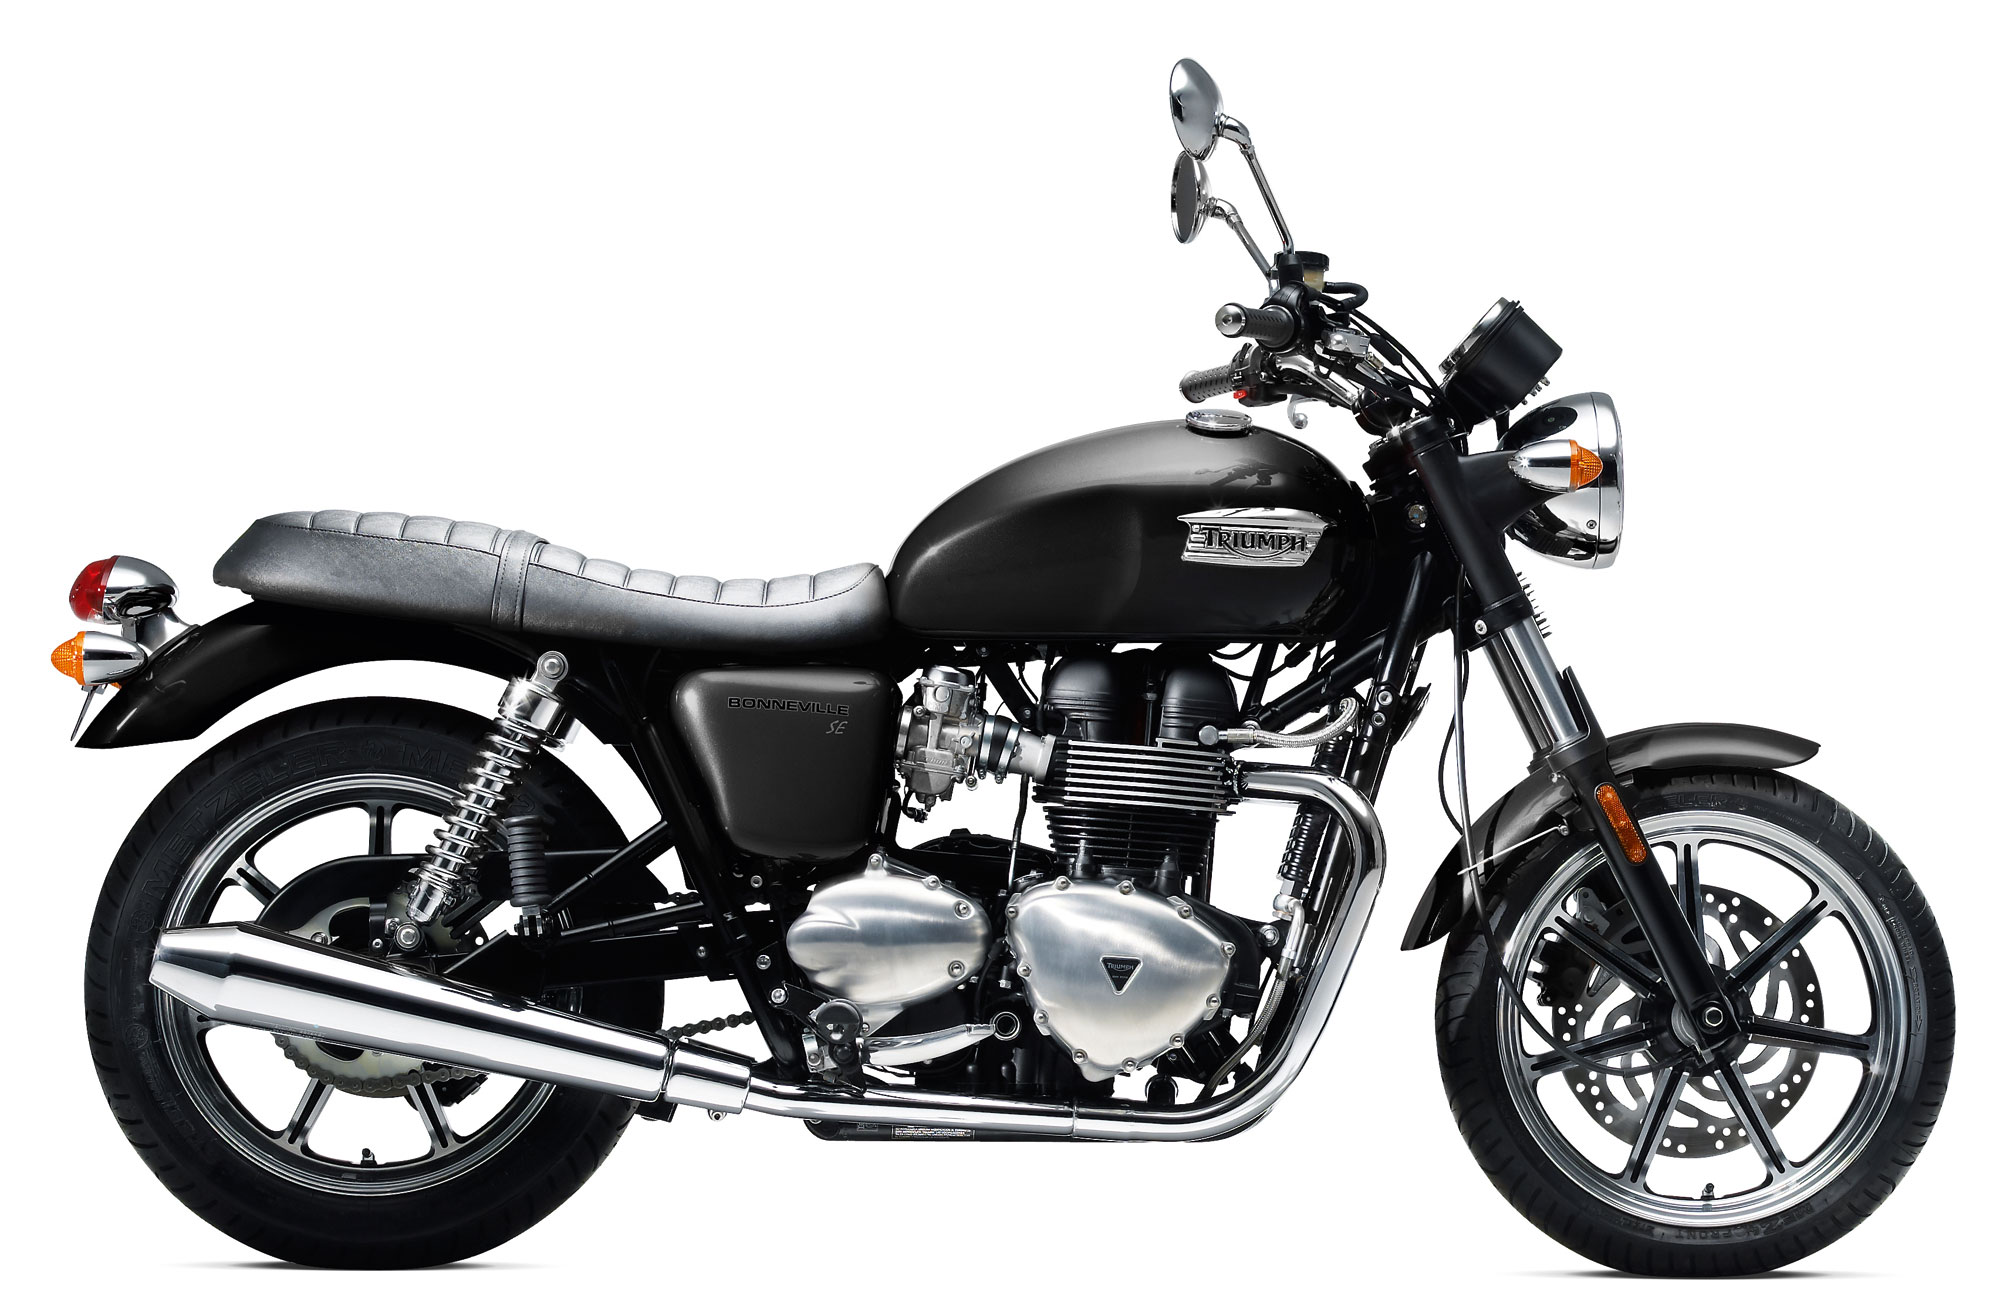 pictures.topspeed.com/IMG/jpg/201211/2013-triumph-...